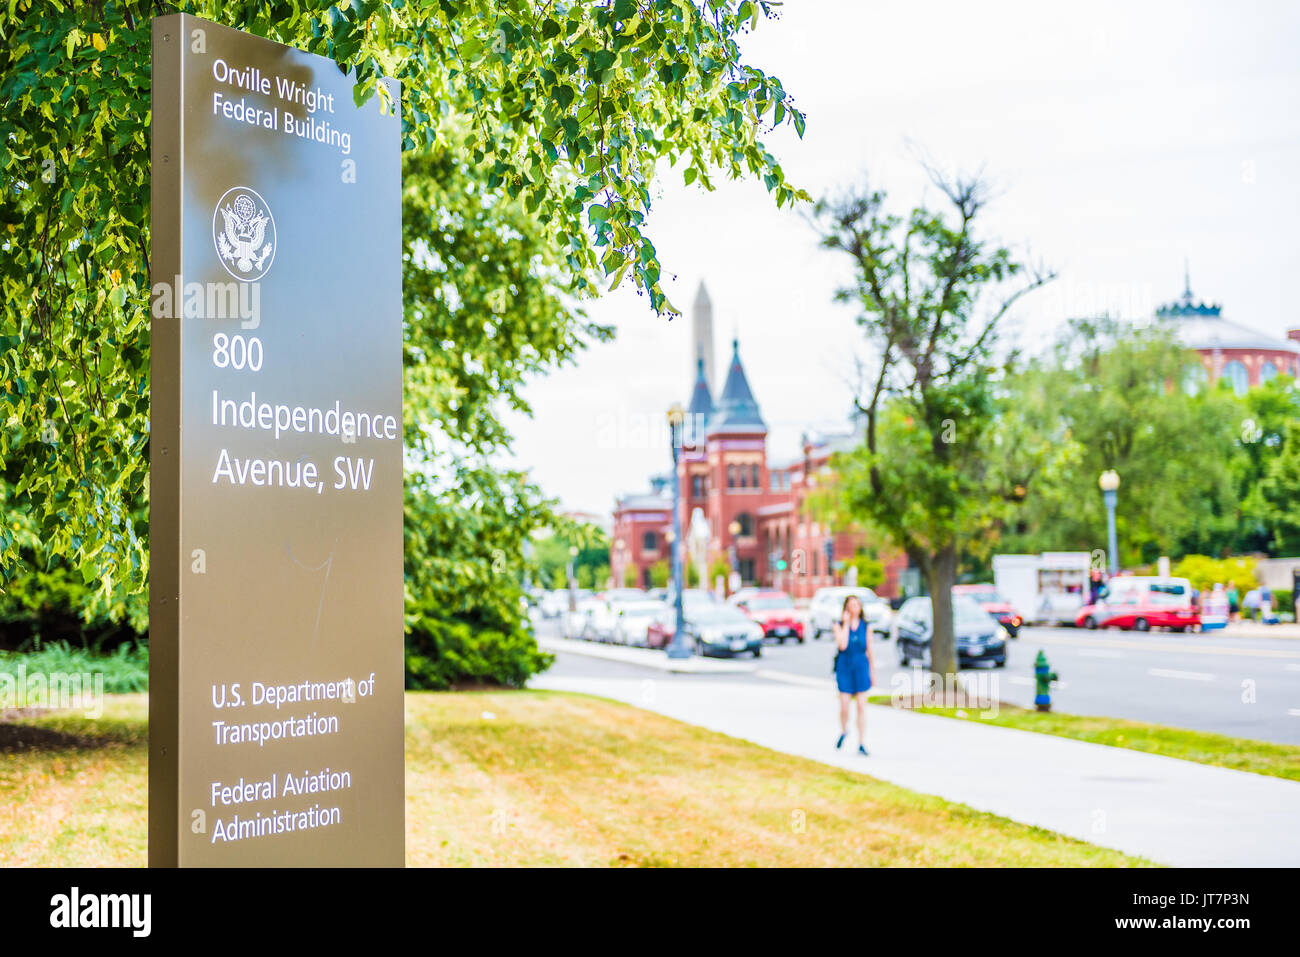 Washington DC, USA - July 3, 2017: US Department of Transportation and Federal Aviation Administration signs headquarters at Orville Wright building o - Stock Image